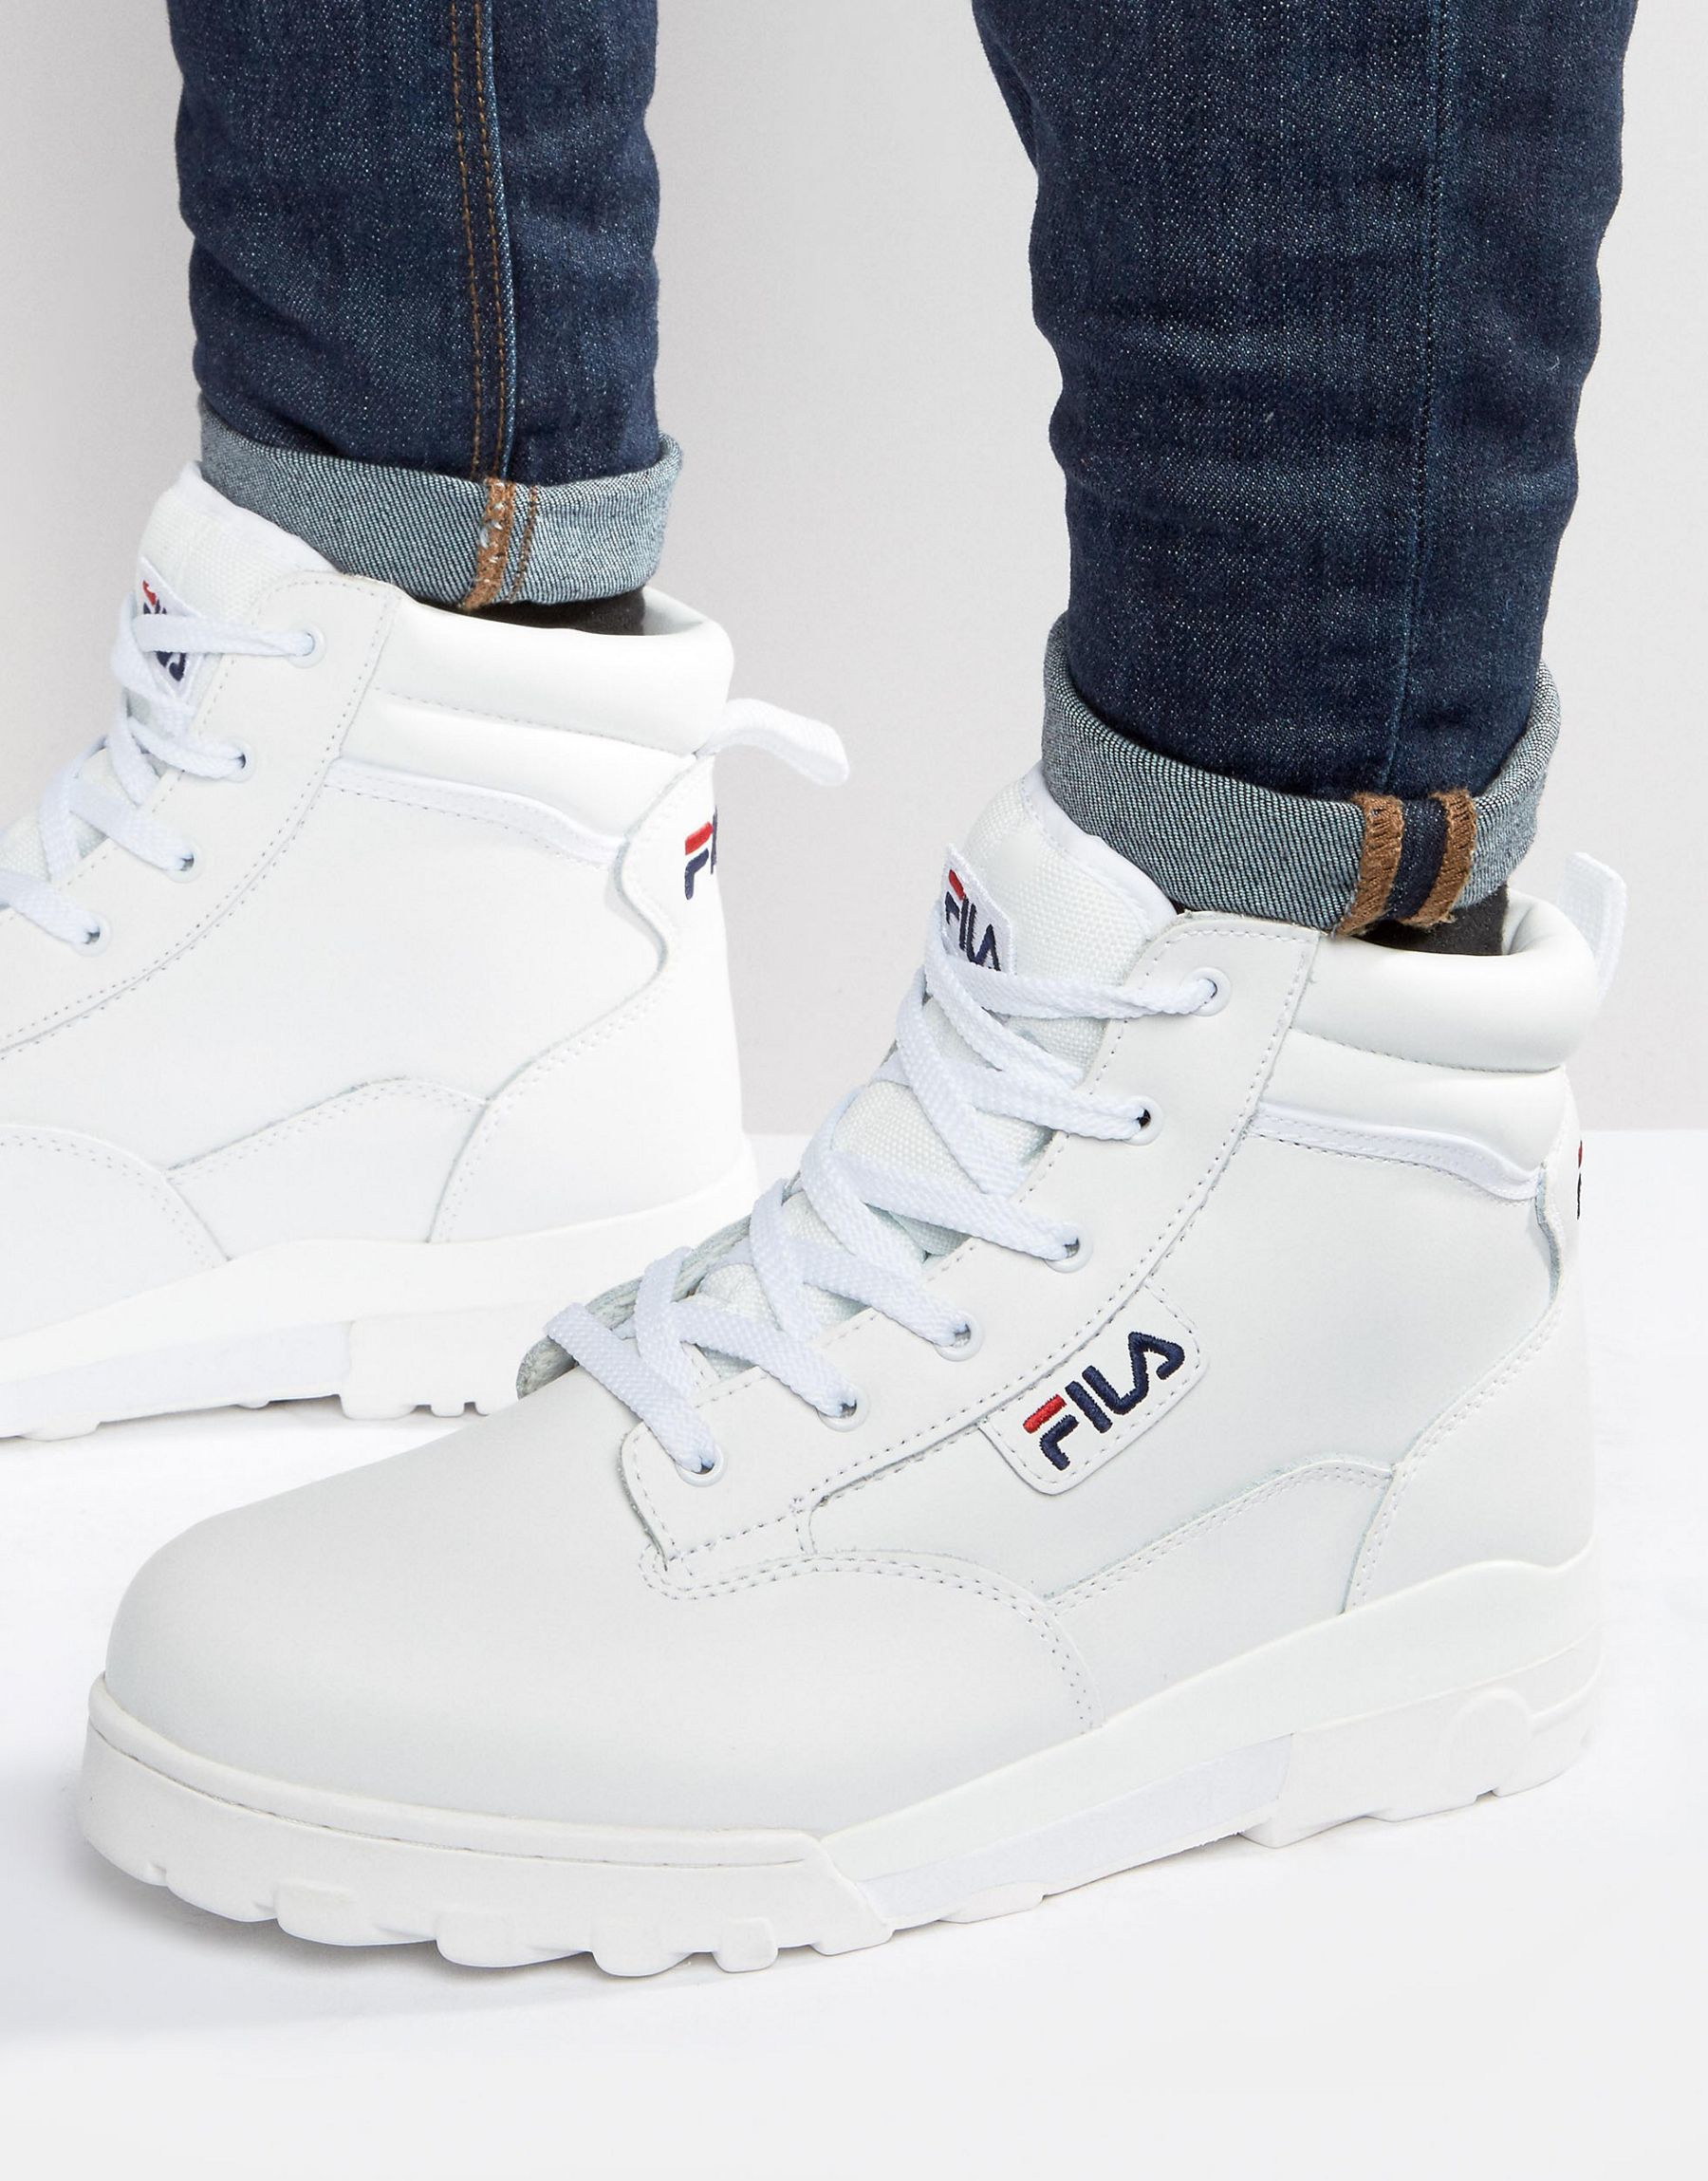 bd9b1ed79b4 Lyst - Fila Grunge Mid Laceup Boots in White for Men